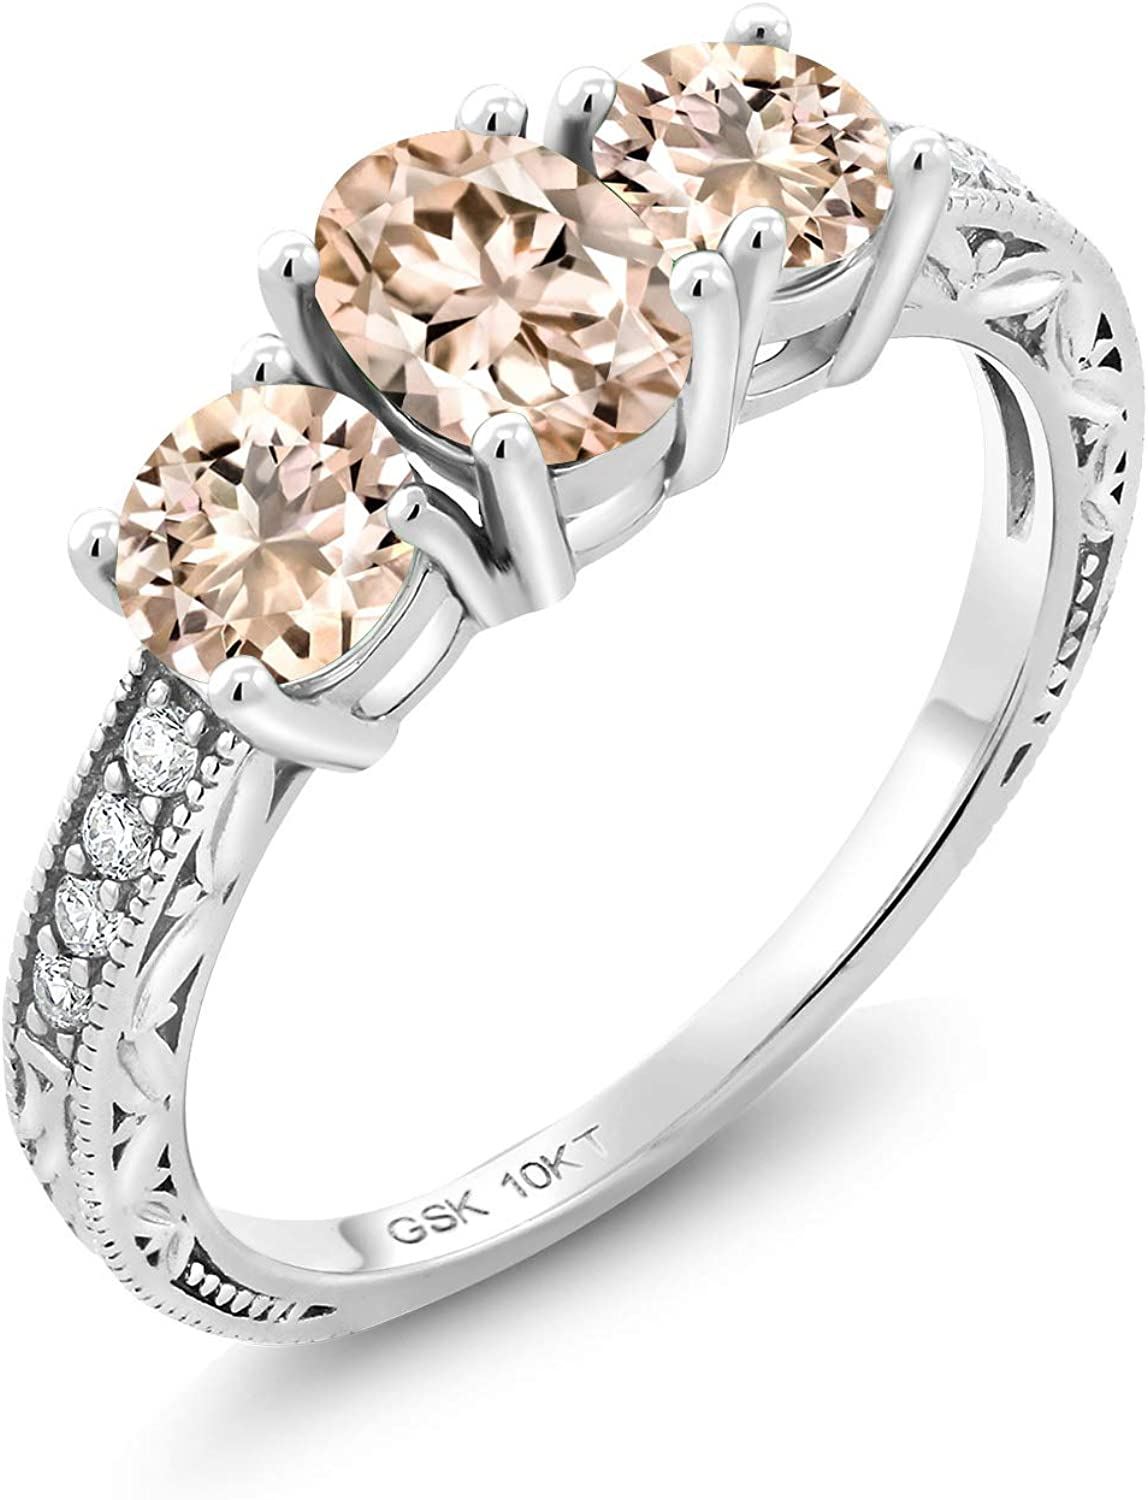 Gem Stone King Peach Morganite 10K White Gold Lab Grown Diamond 3 Stone Women Engagement Ring (1.49 Ct Oval Available in size 5, 6, 7, 8, 9)